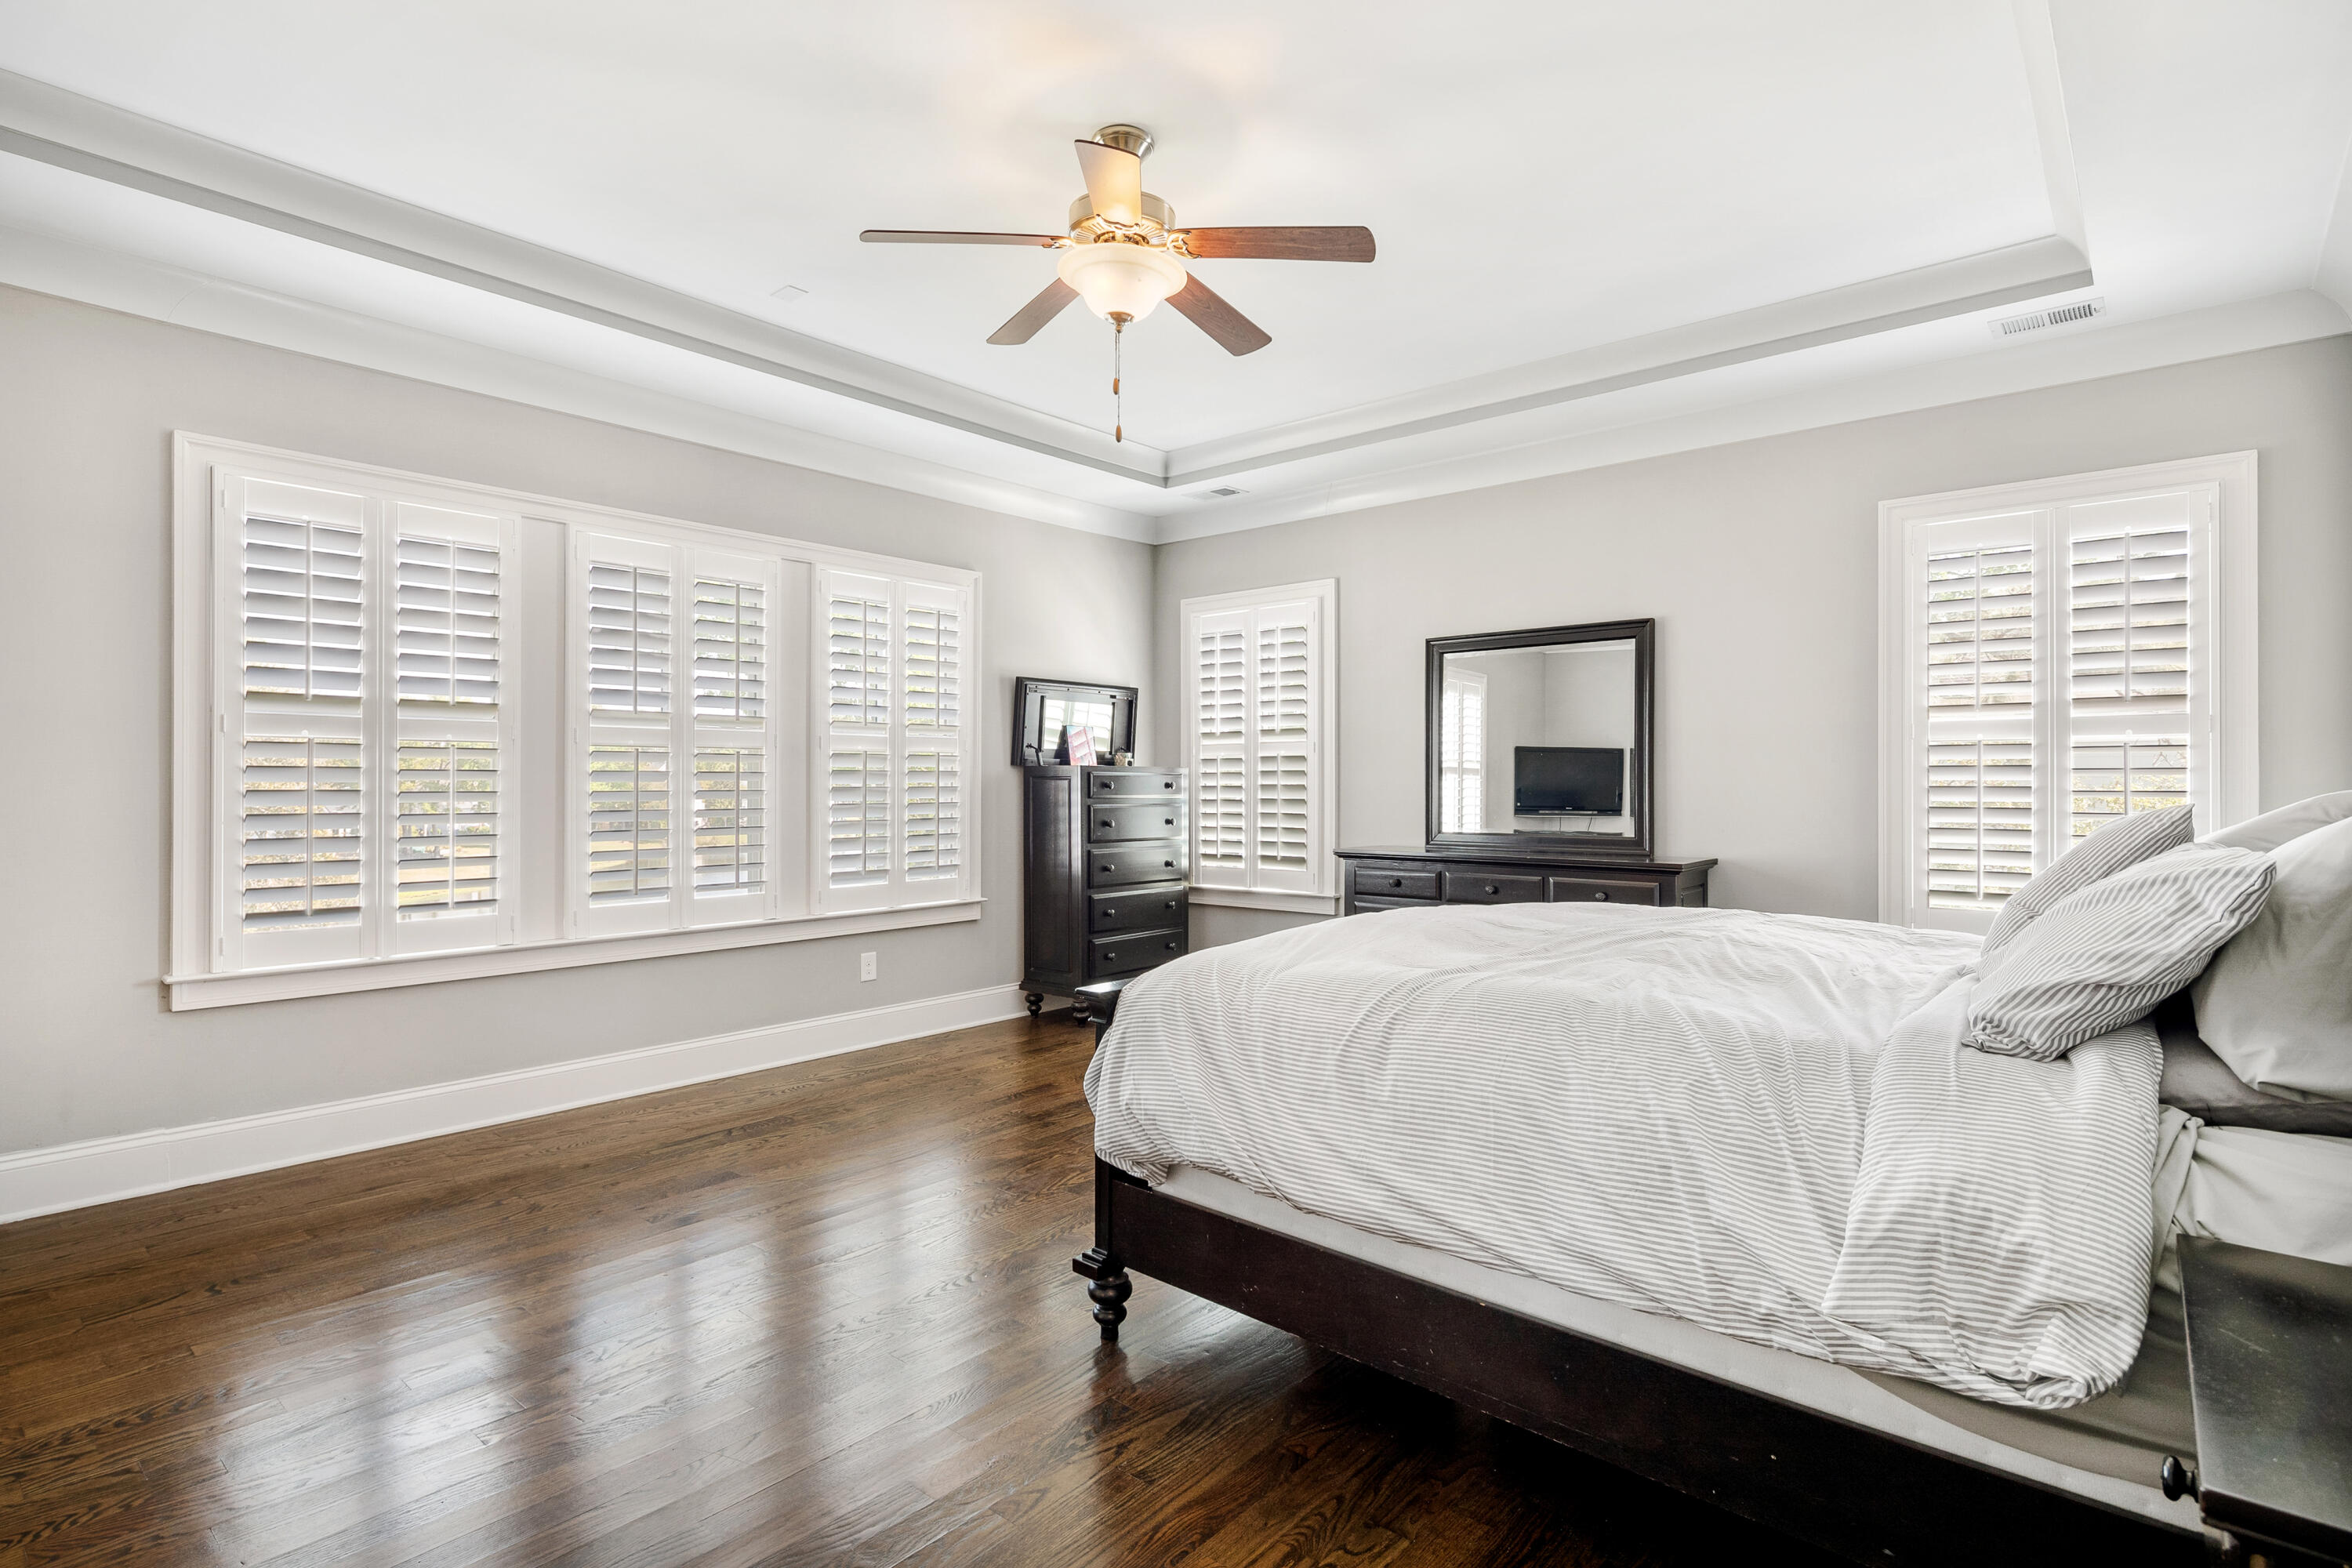 Rivertowne Country Club Homes For Sale - 1633 Rivertowne Country Club, Mount Pleasant, SC - 18